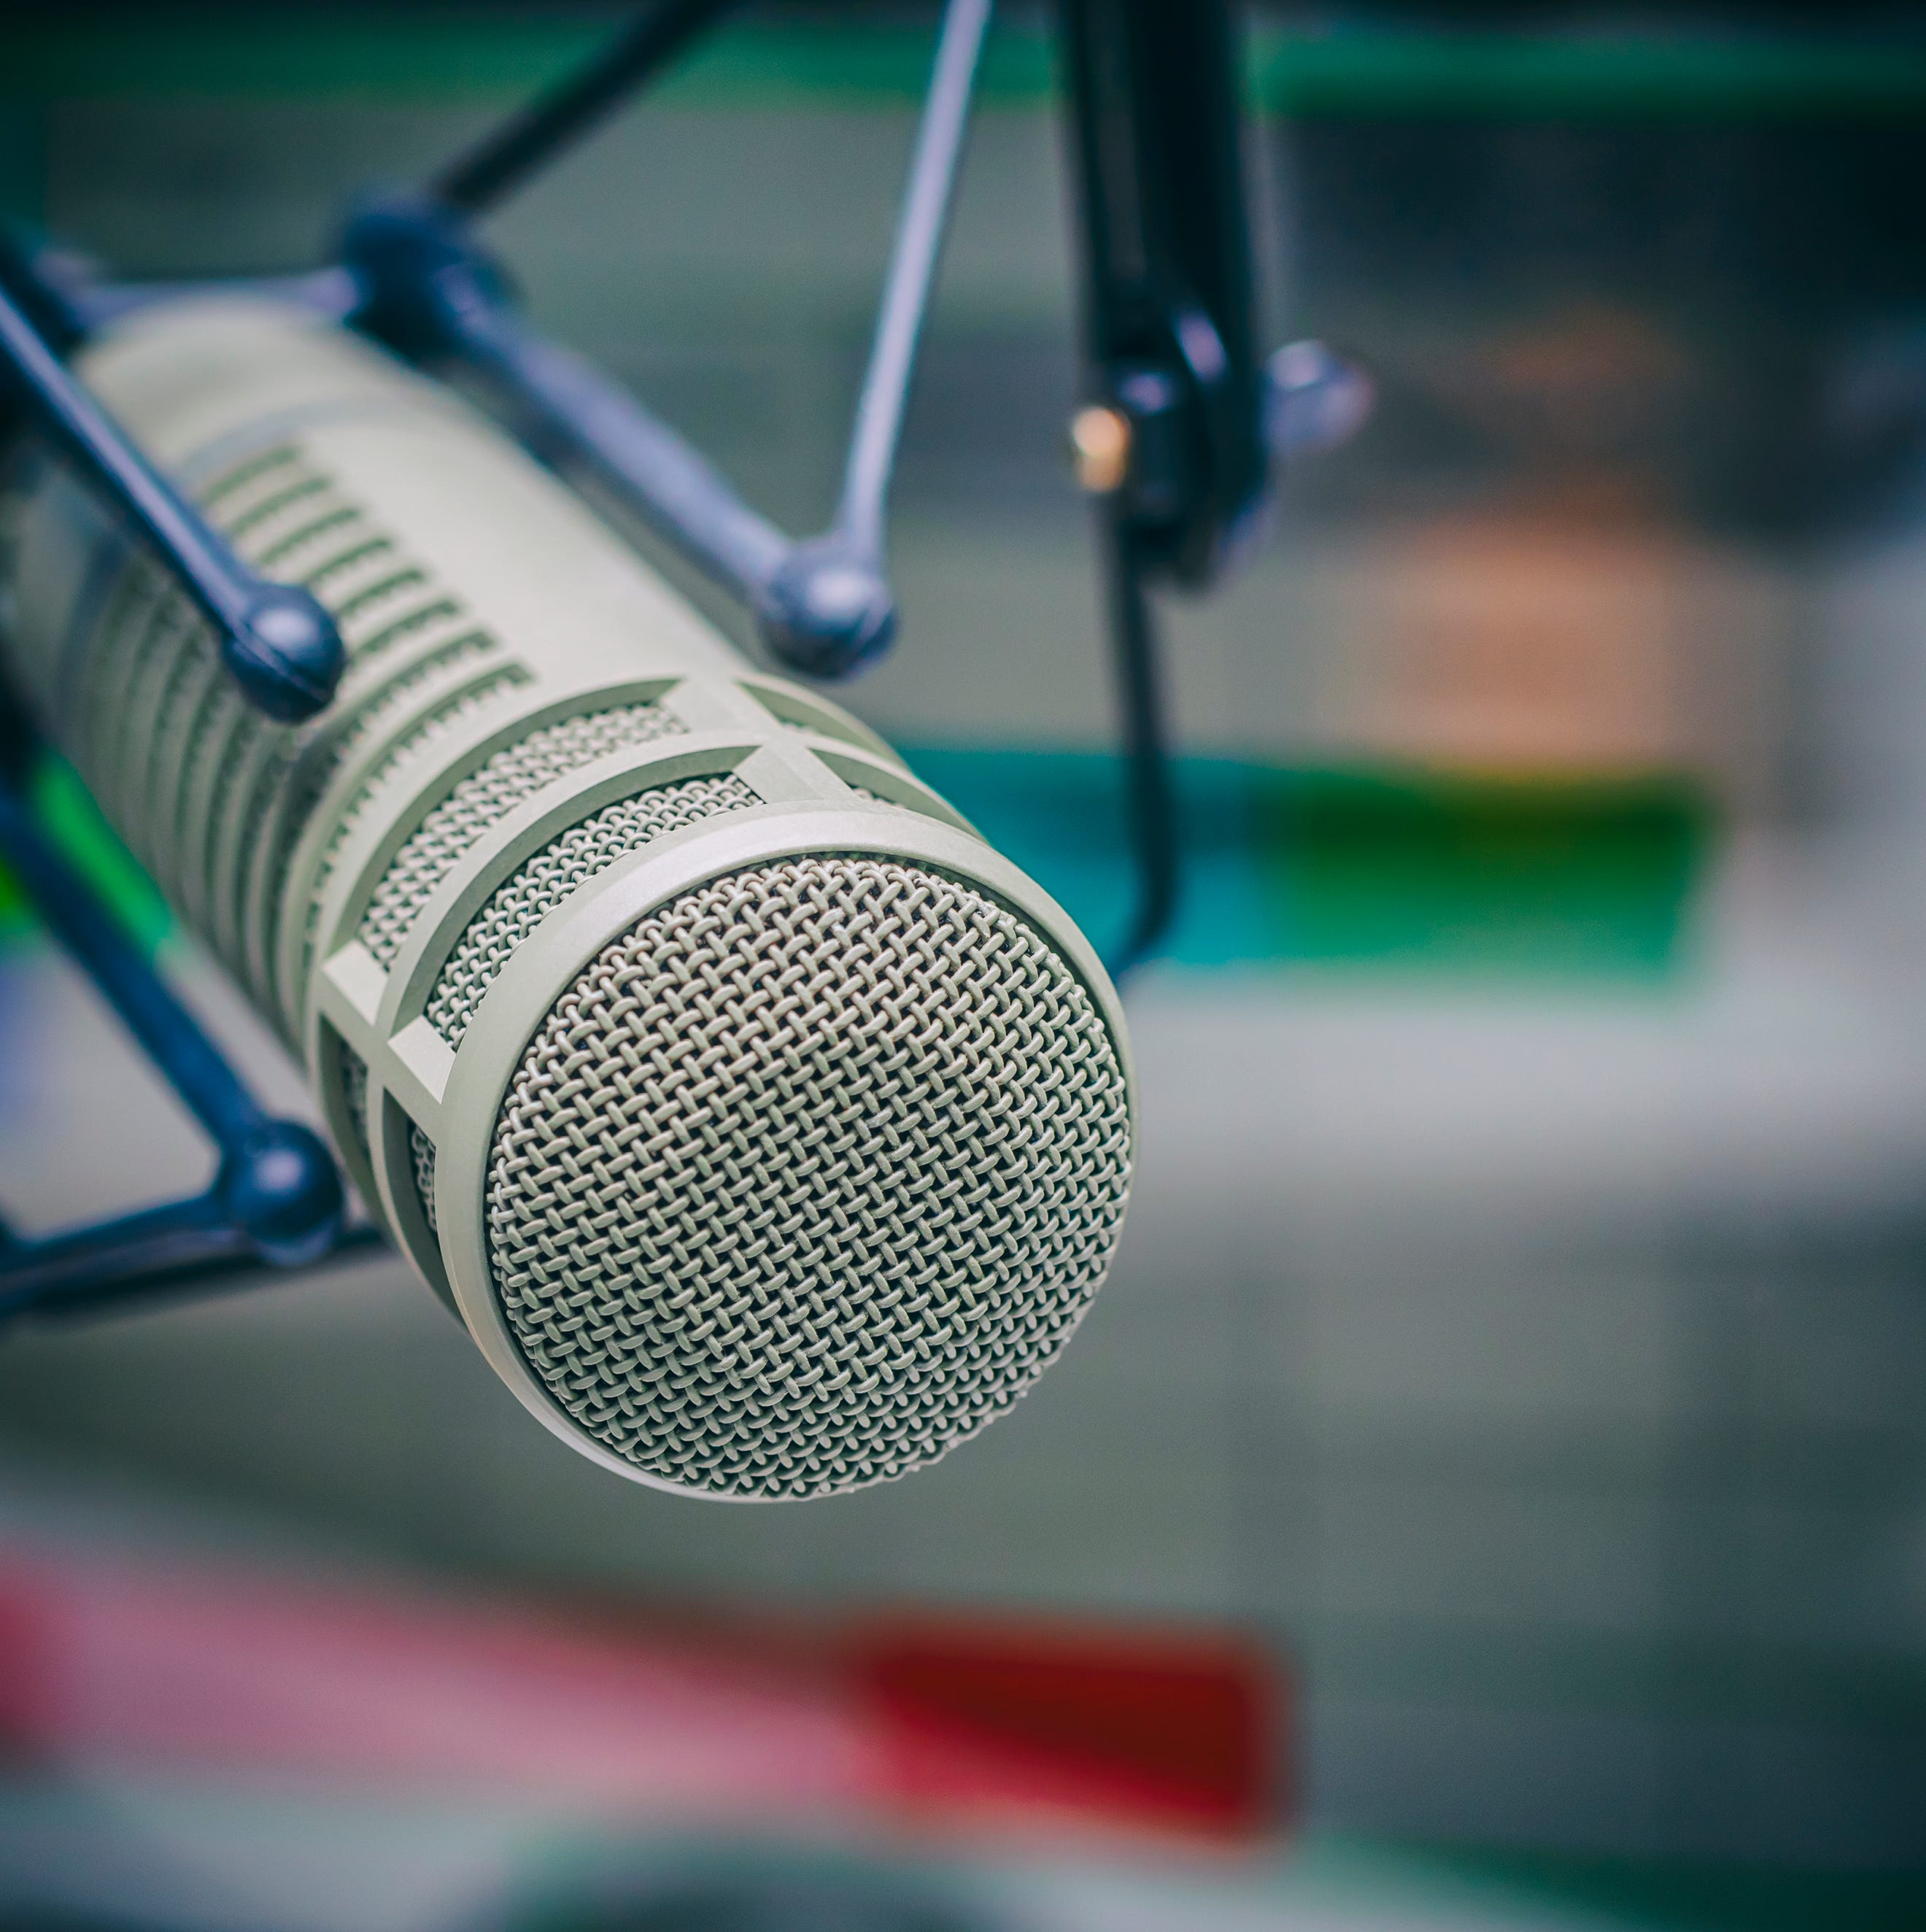 TRI 102.5 throws back with new station name